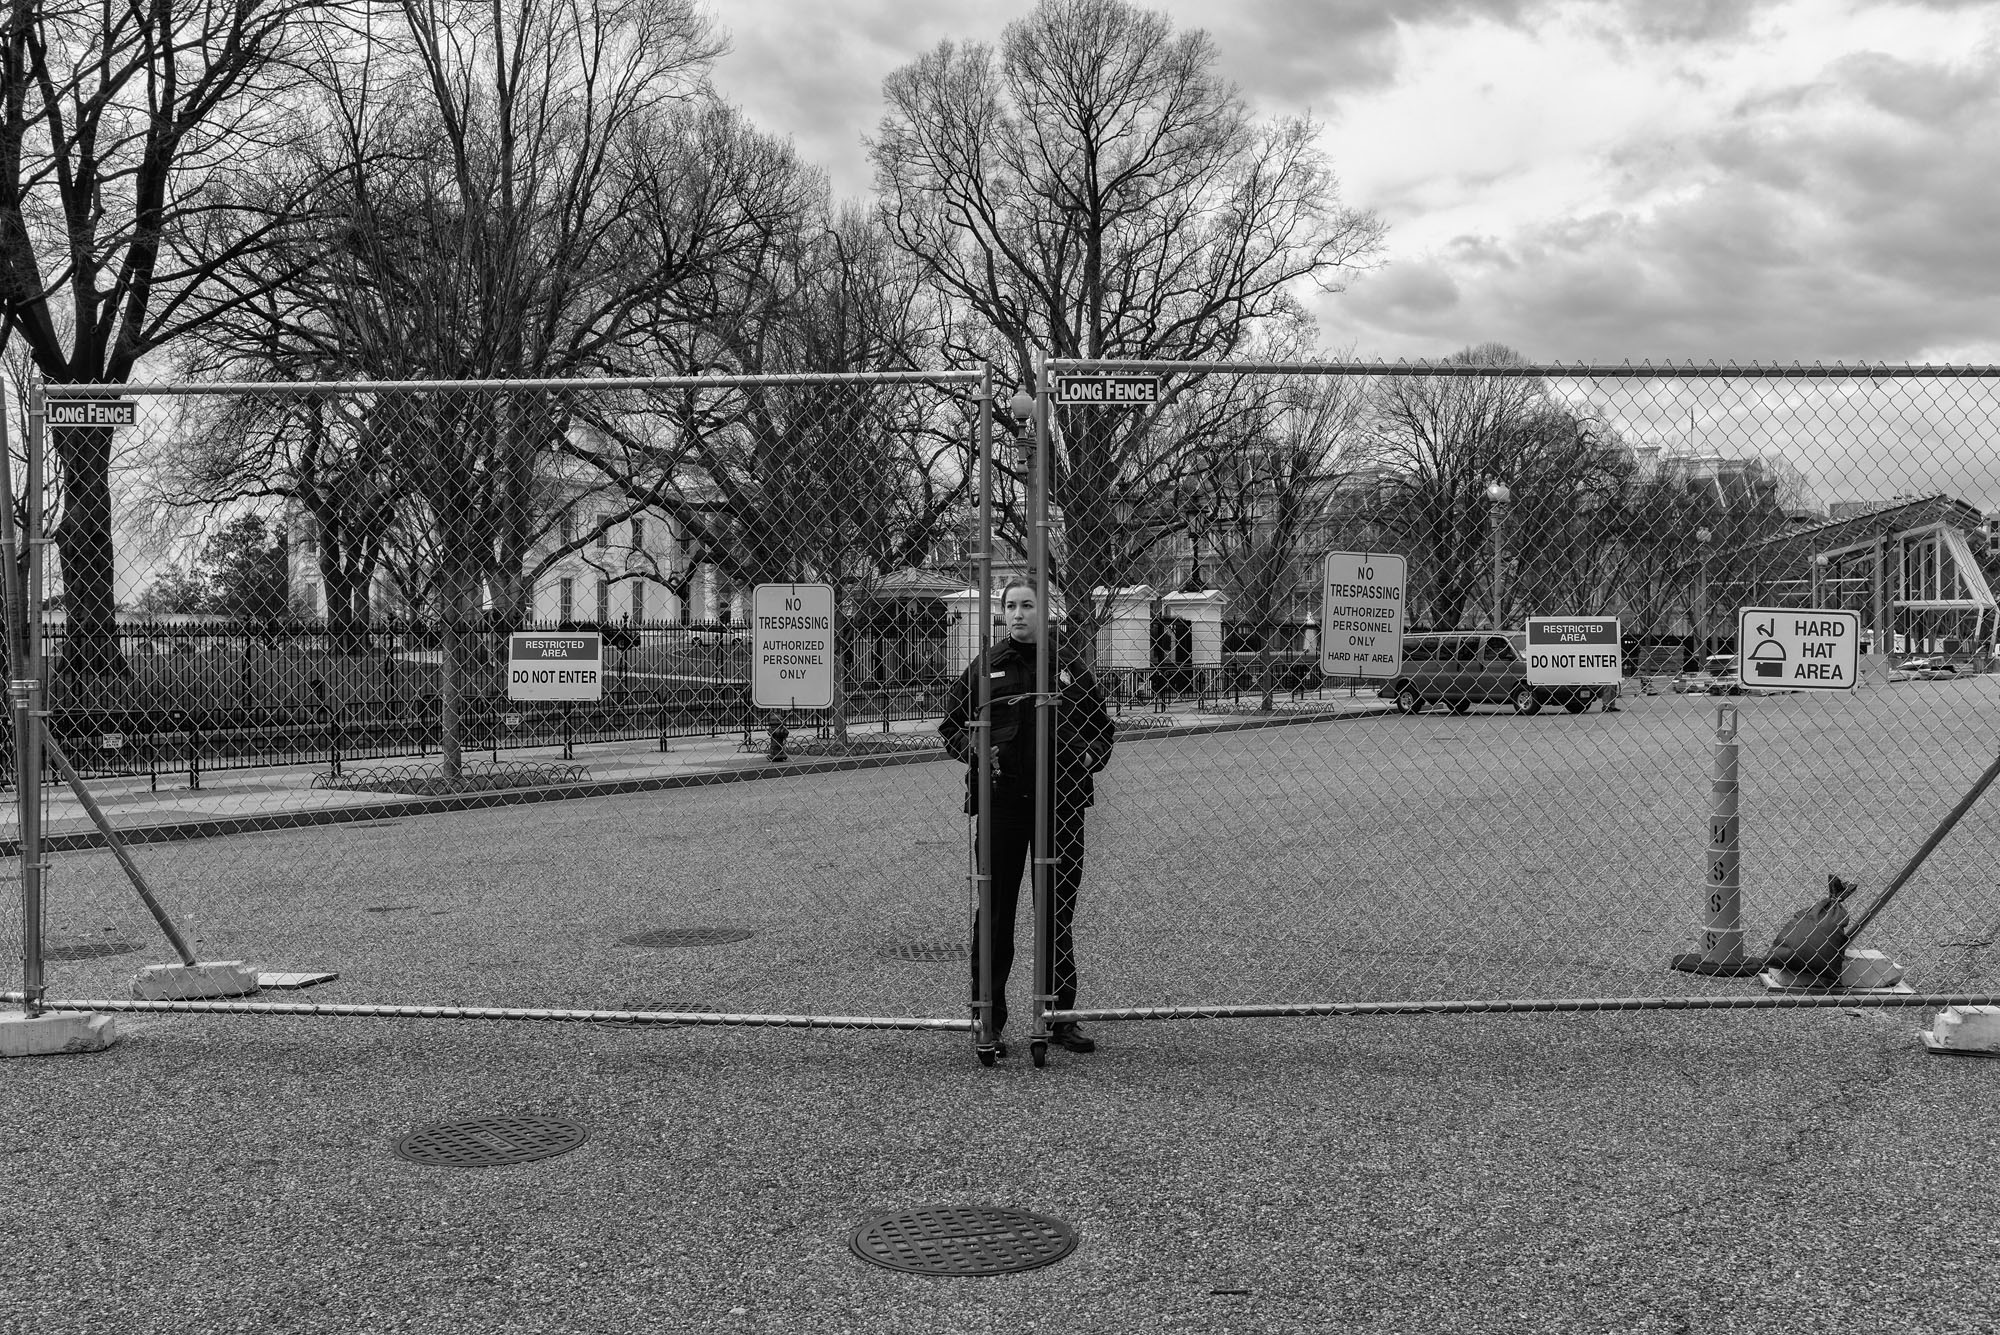 Temporary security fences surround the White House, four weeks after the Presidential Inauguration, on February 15, 2017.